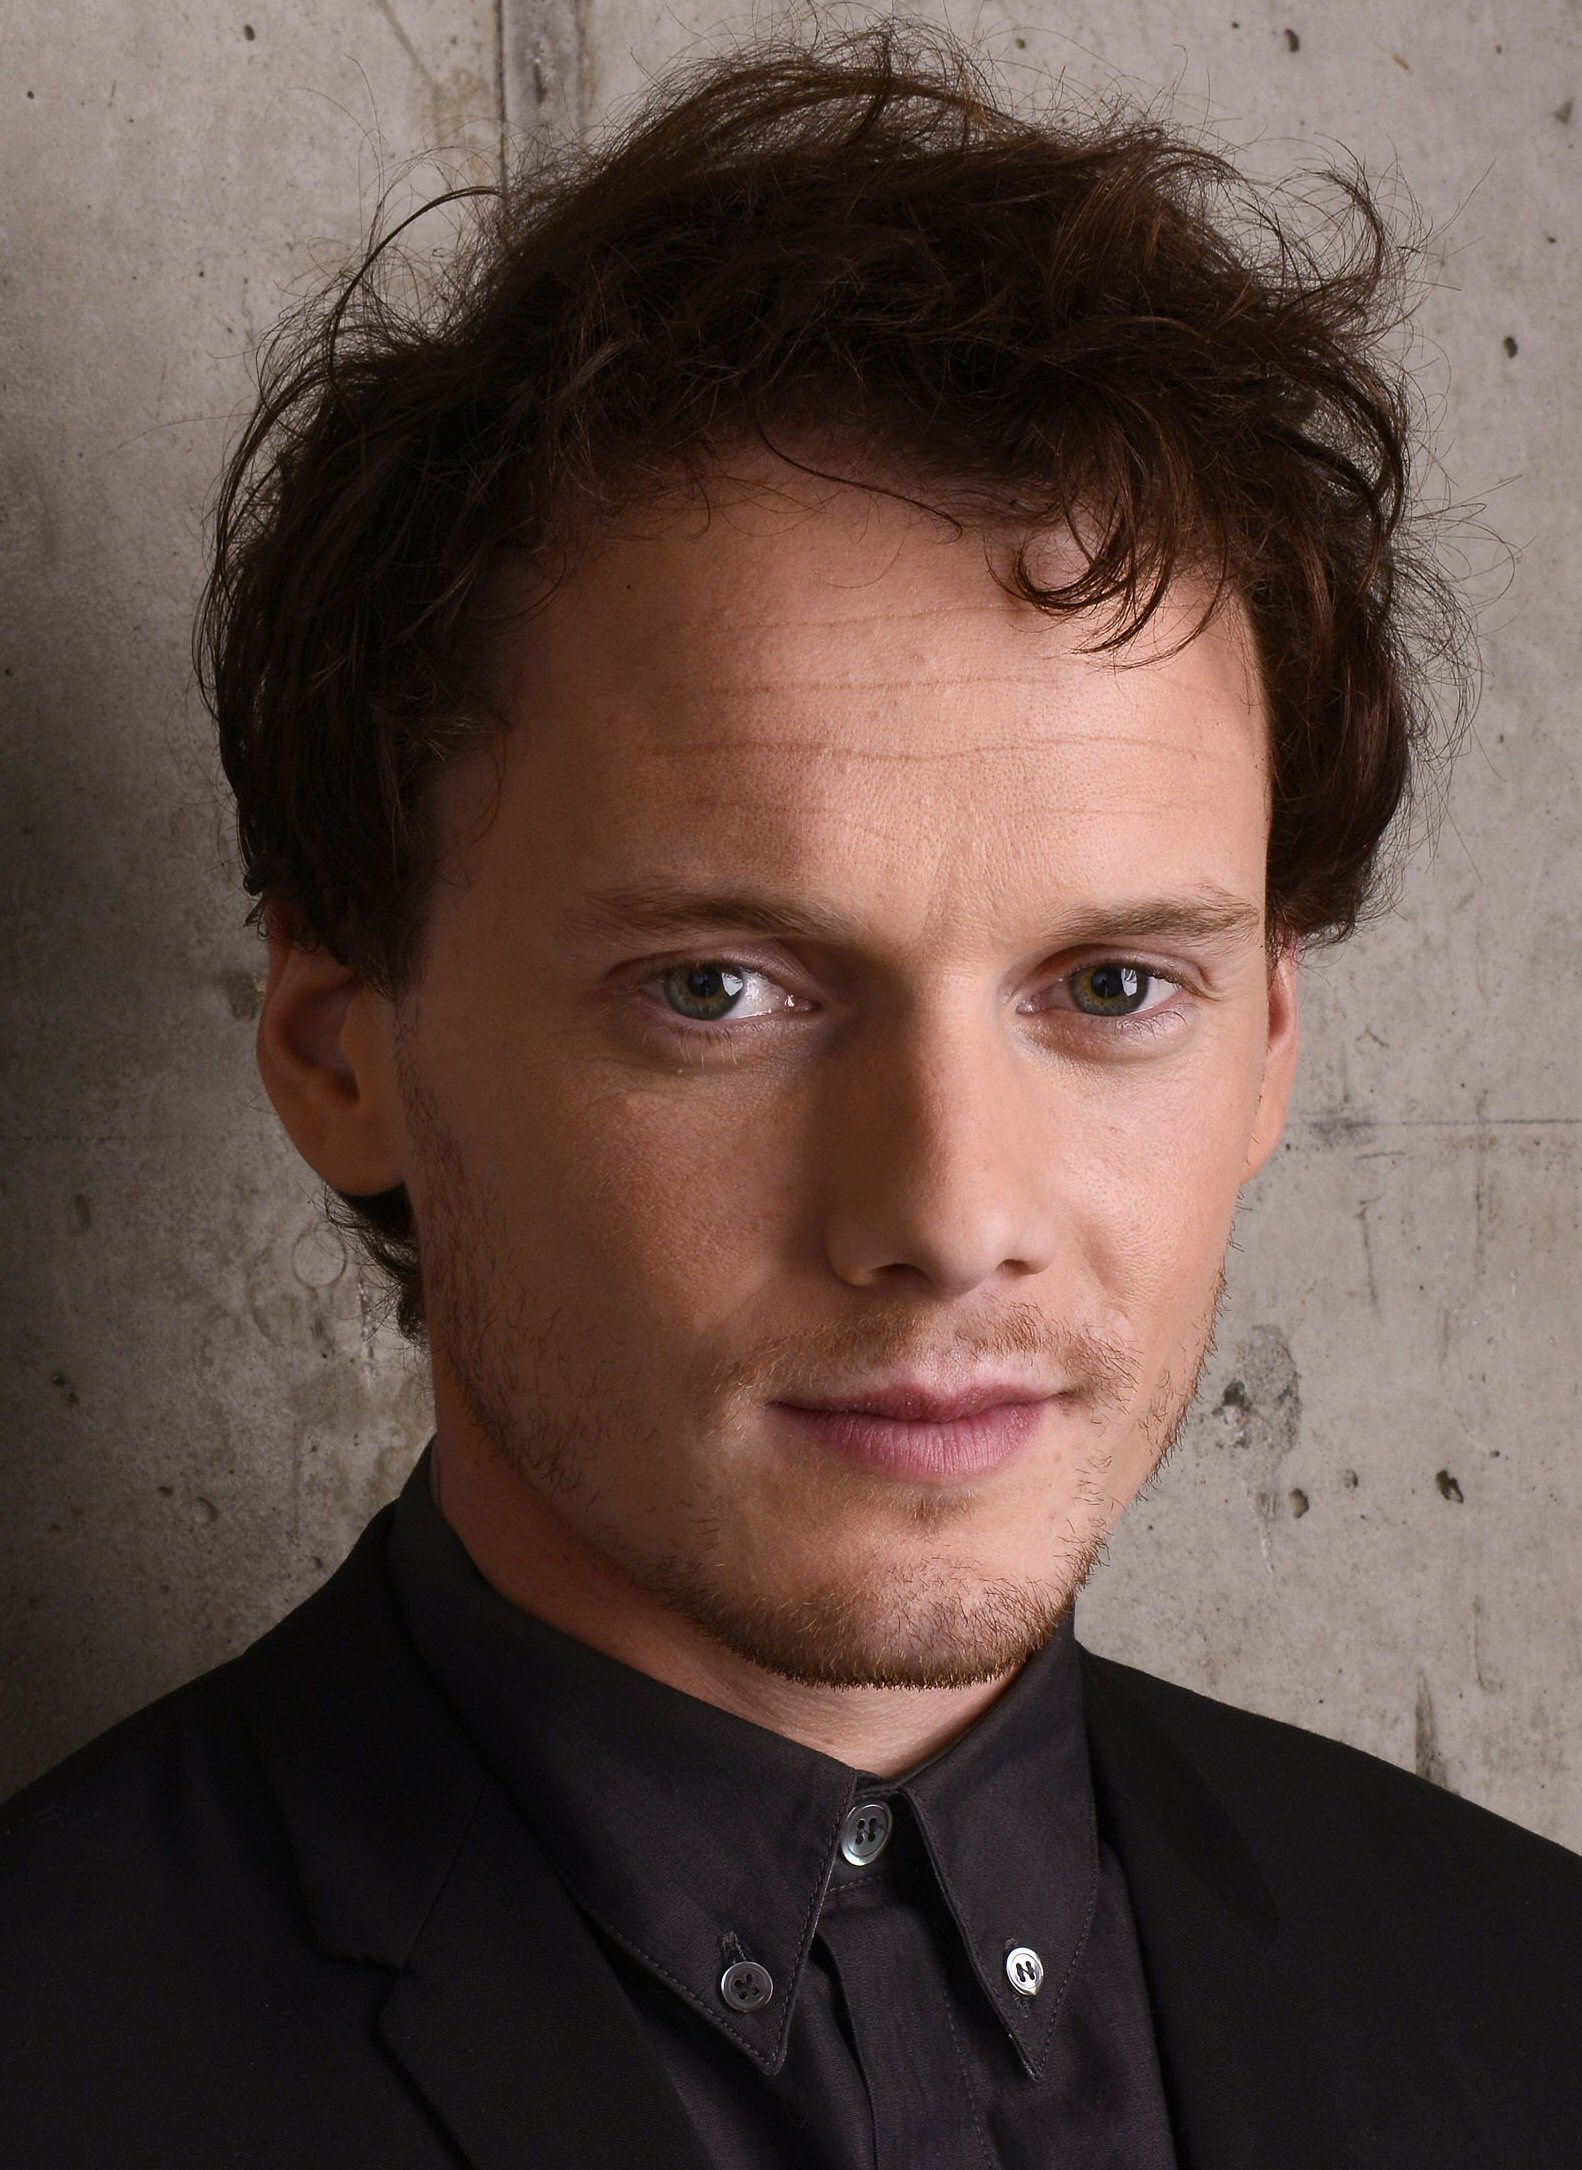 anton yelchin смертьanton yelchin black and white, anton yelchin death, anton yelchin funeral, anton yelchin died, anton yelchin gif, anton yelchin смерть, anton yelchin speaking russian, anton yelchin parents, anton yelchin wiki, anton yelchin charlie bartlett, anton yelchin vk, anton yelchin trollhunters, anton yelchin twitter, anton yelchin height, anton yelchin gif hunt, anton yelchin and felicity jones, anton yelchin movies, anton yelchin умер, anton yelchin imdb, anton yelchin jeep